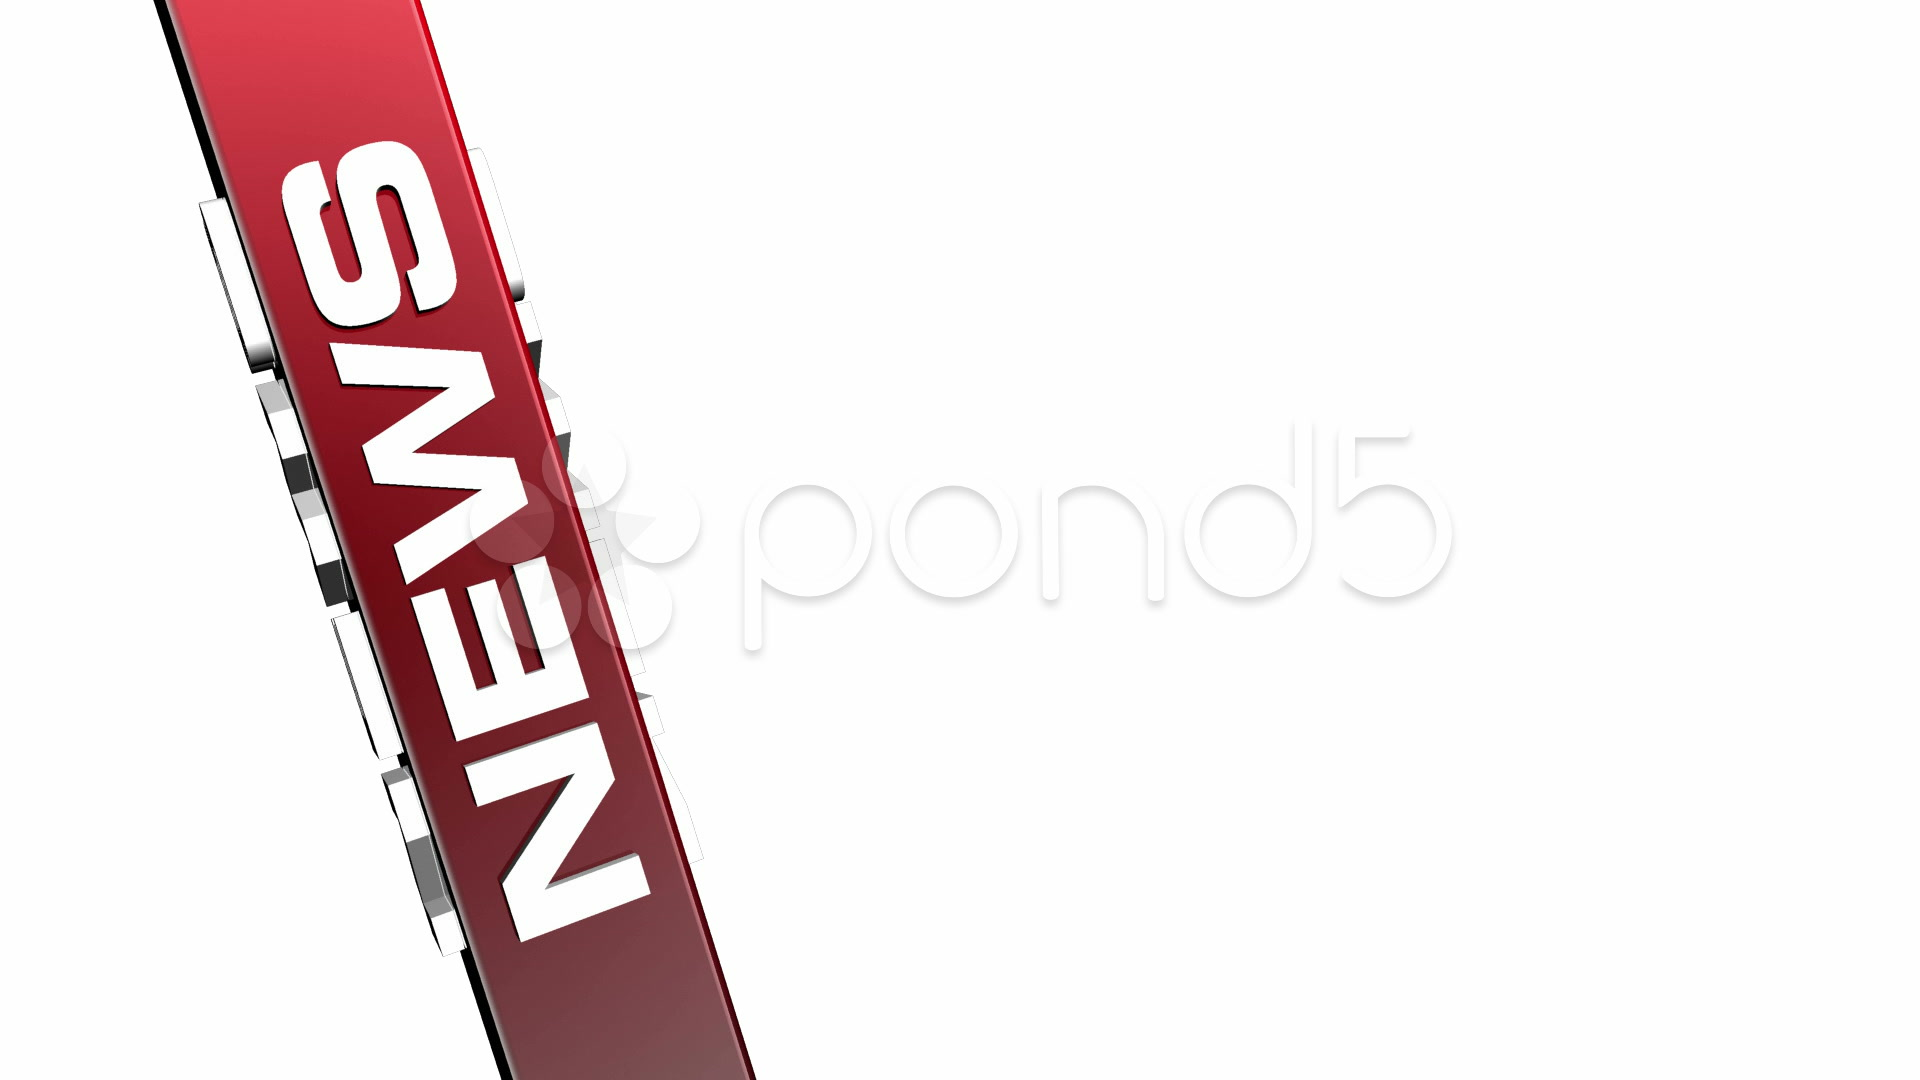 News redbox background white screen Left Hi Res 7768396 1920x1080